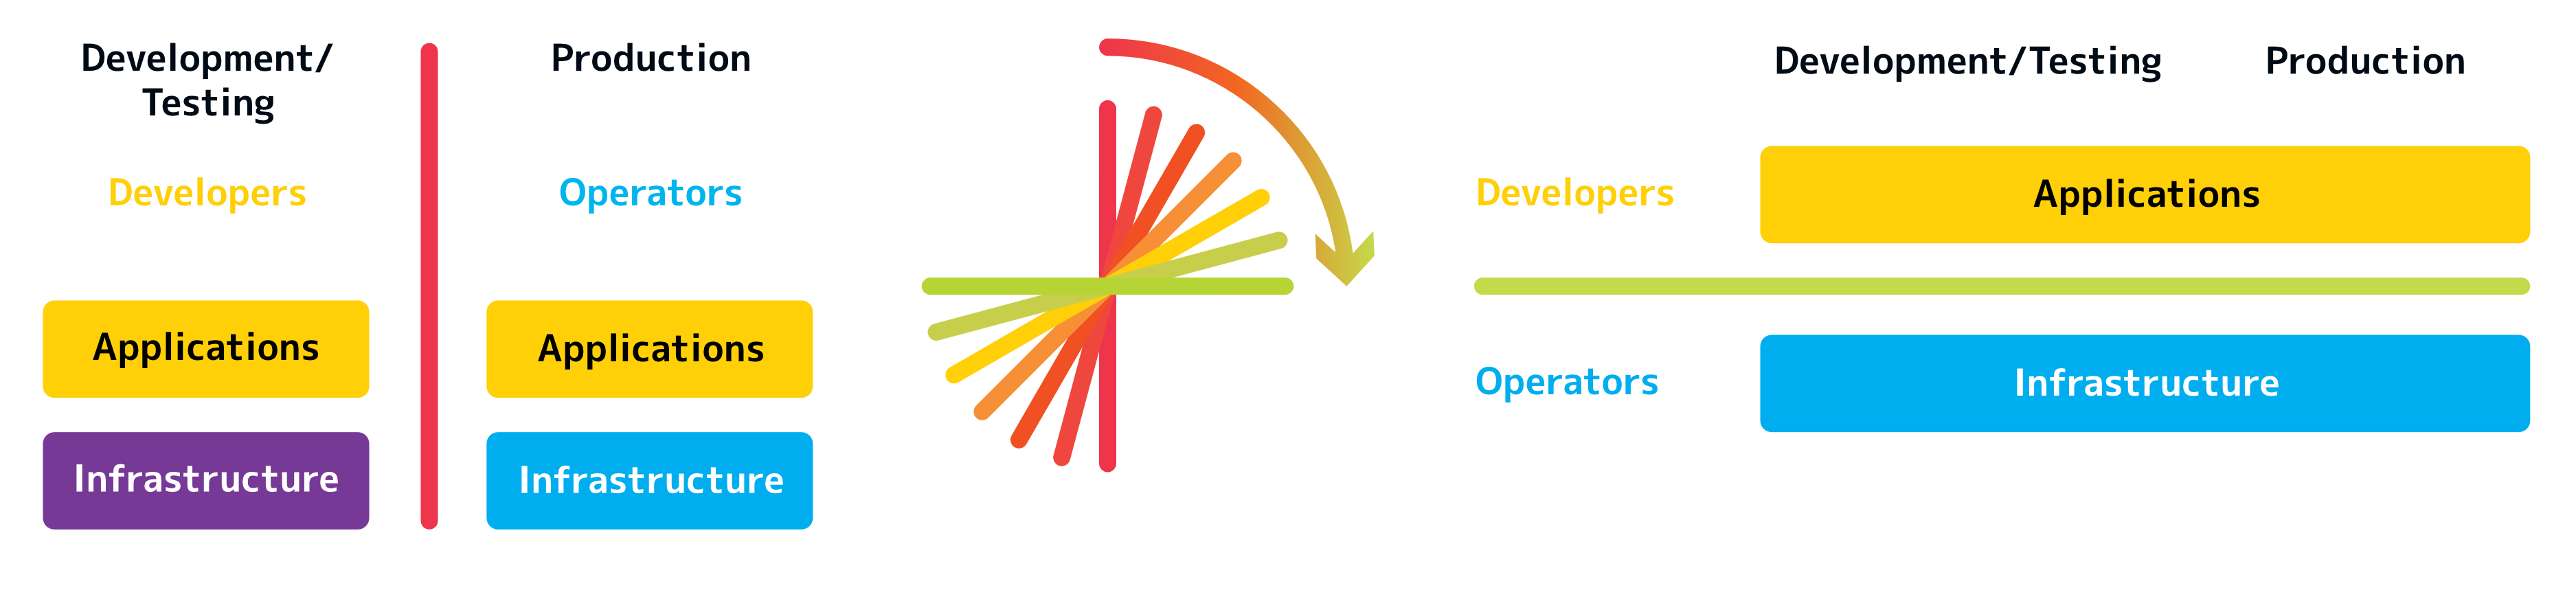 The interface between Dev and Ops is tilting.